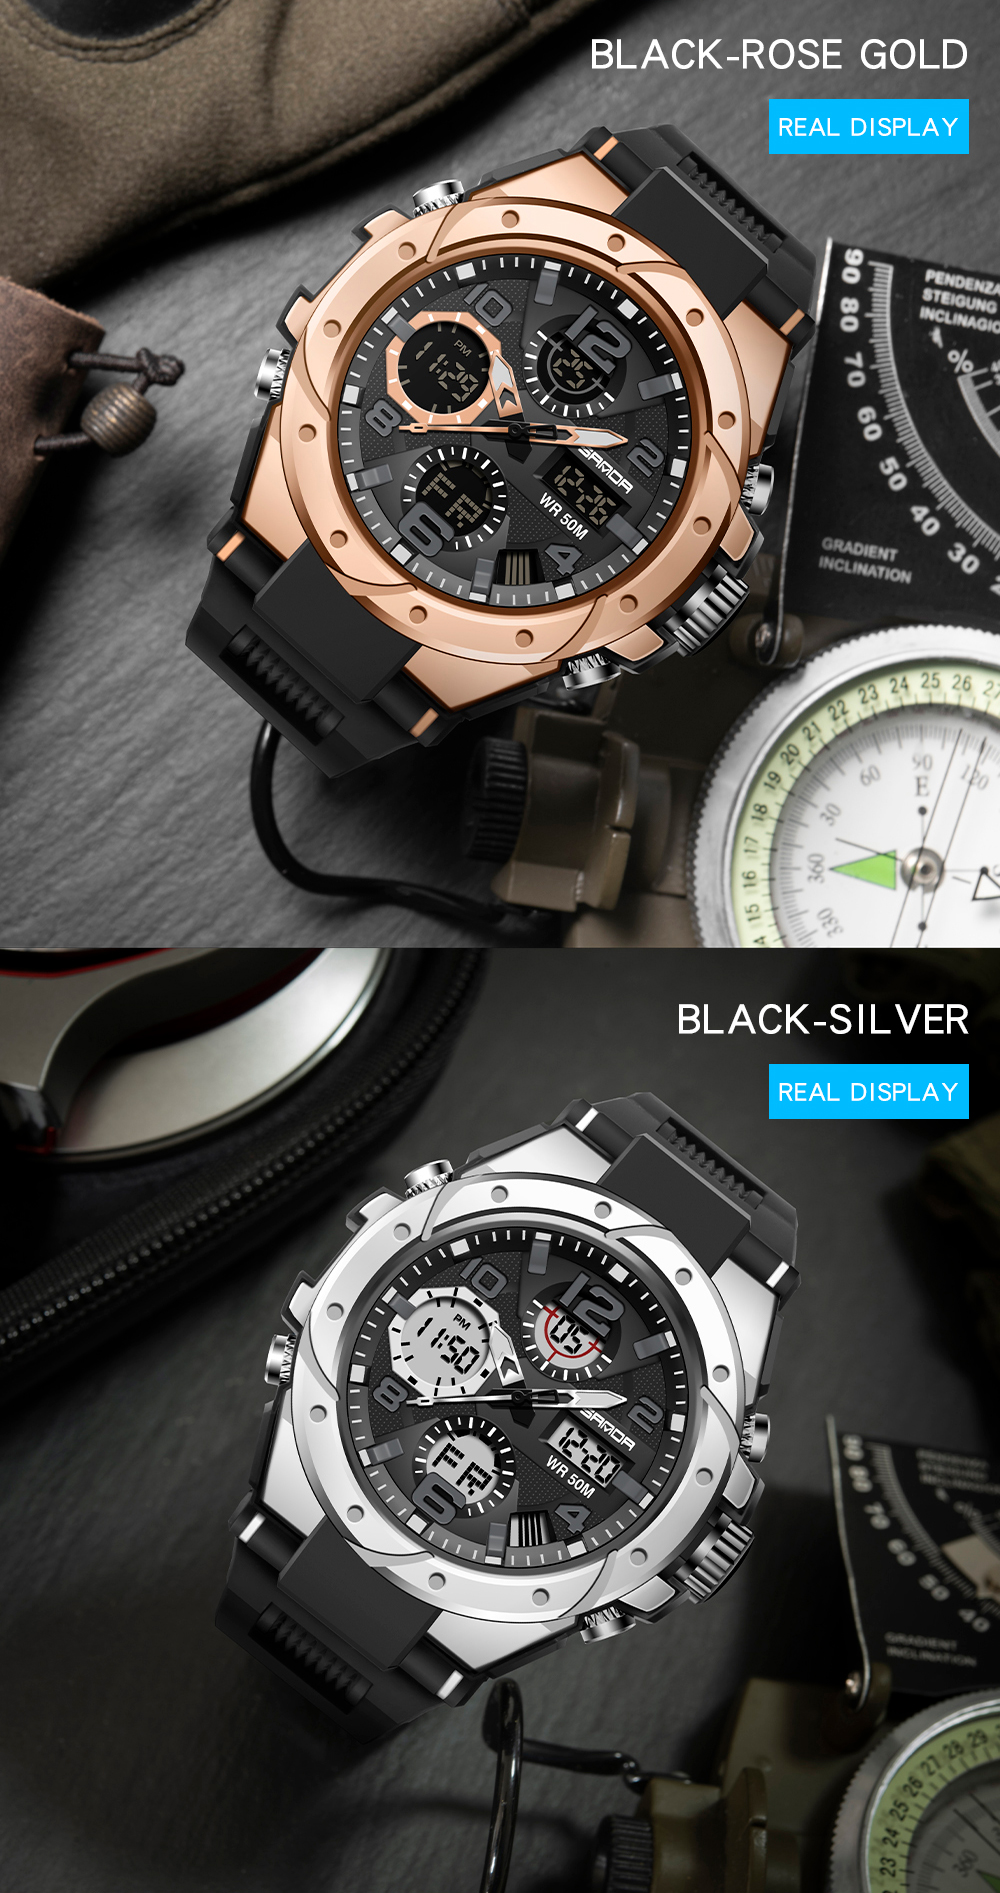 H4e2544b02b9949aeb35de6452e8b7af1k SANAD Top Brand Luxury Men's Military Sports Watches 5ATM Waterproof